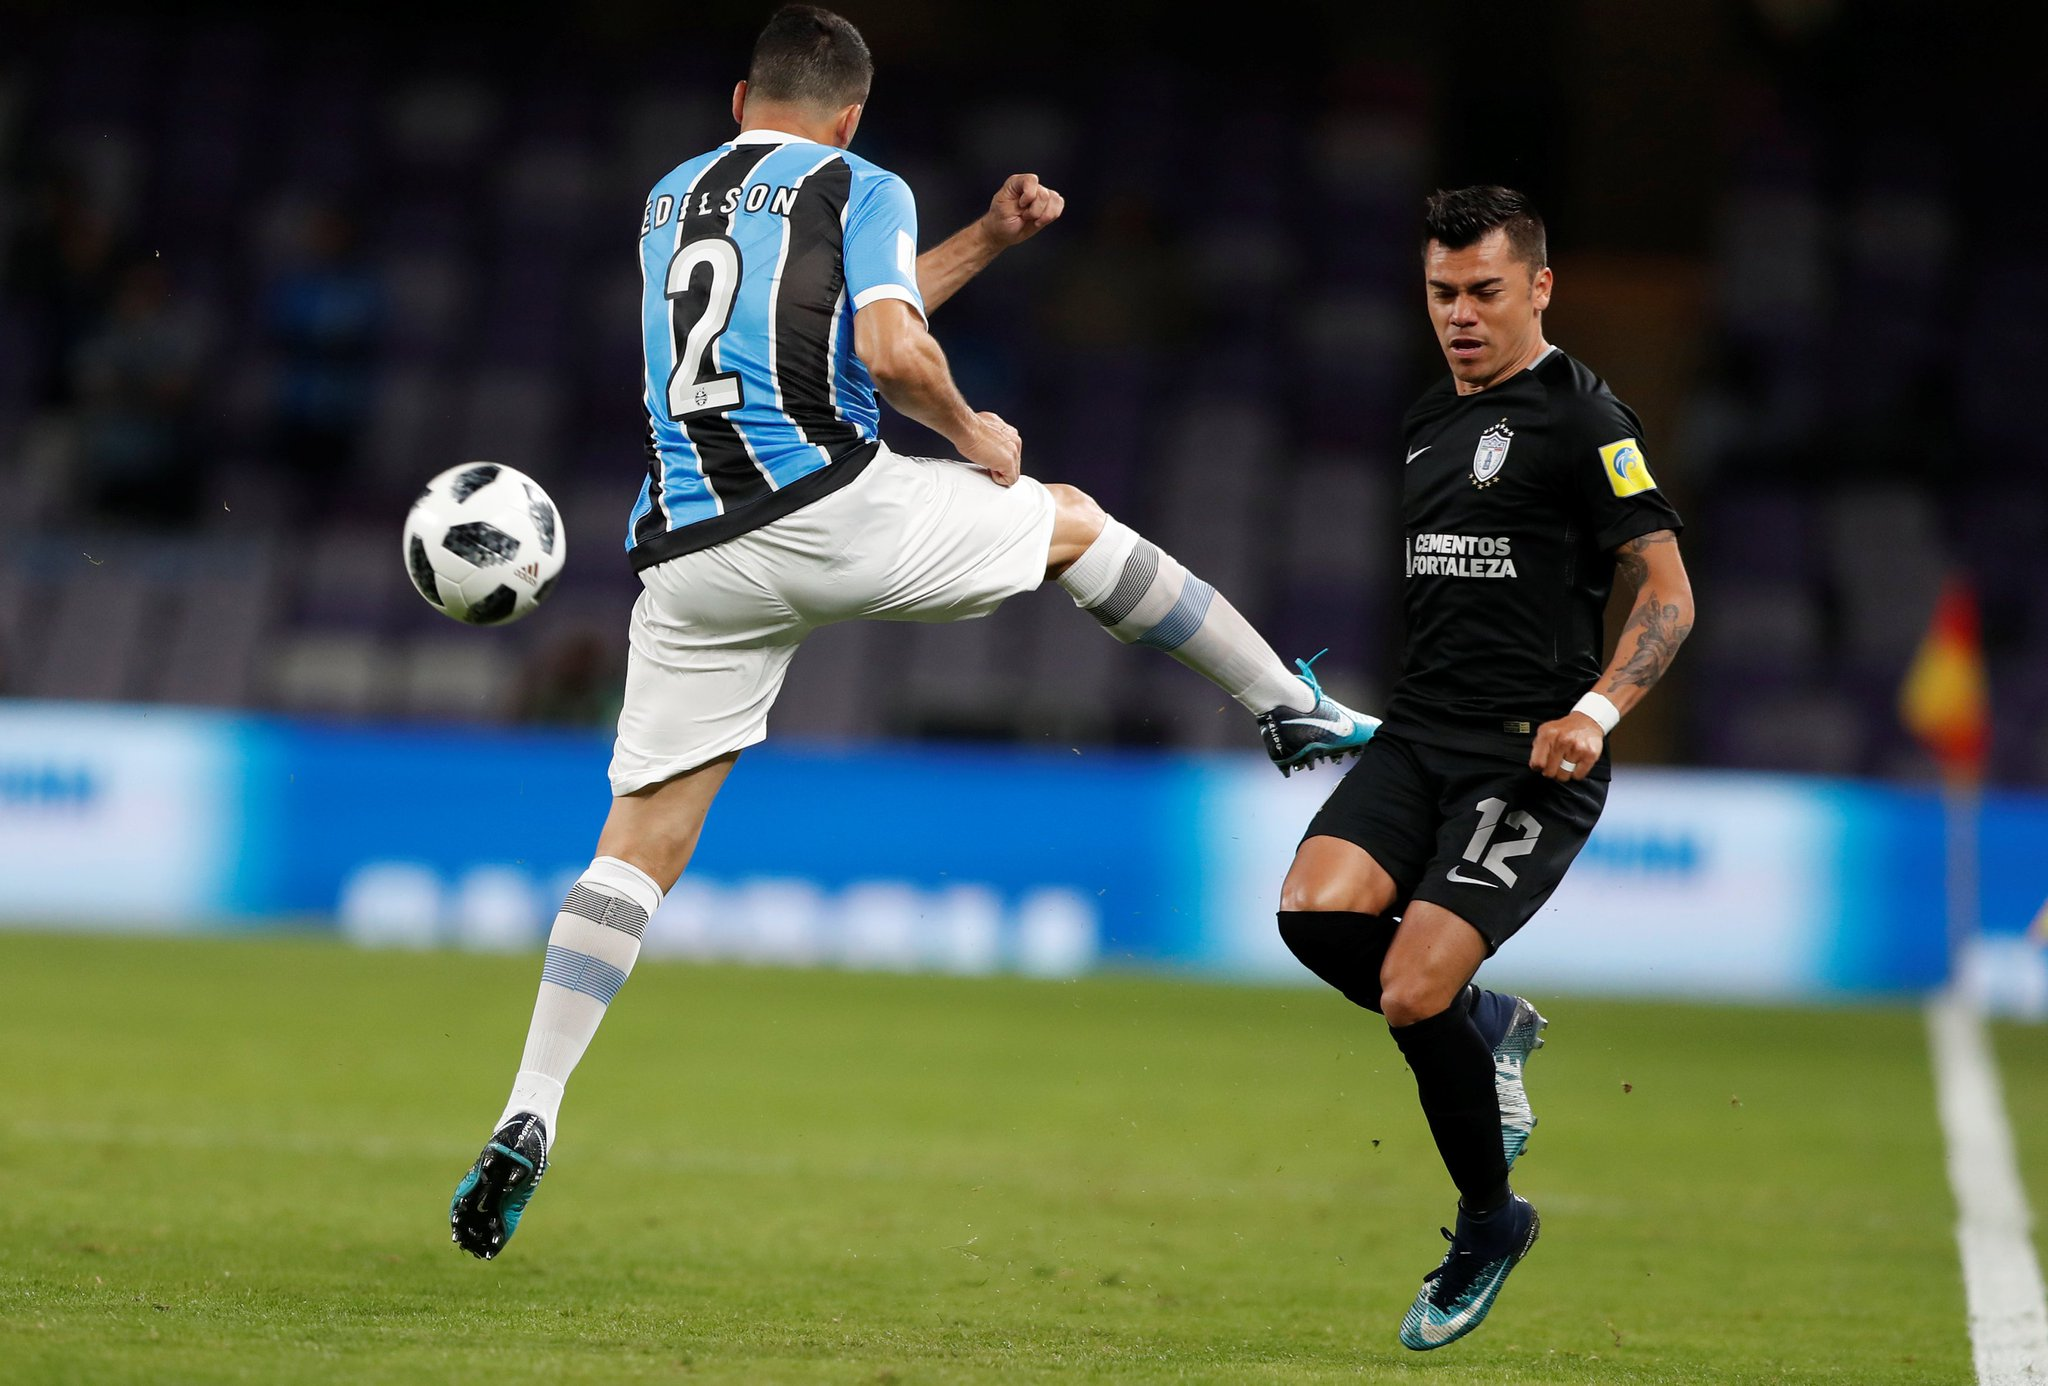 |@Tuzos ���� vs. @Gremio ���� por un lugar en la FINAL del Mundial de Clubes https://t.co/hlZlvhWaaX �� EN VIVO https://t.co/lxLWbbUMZU